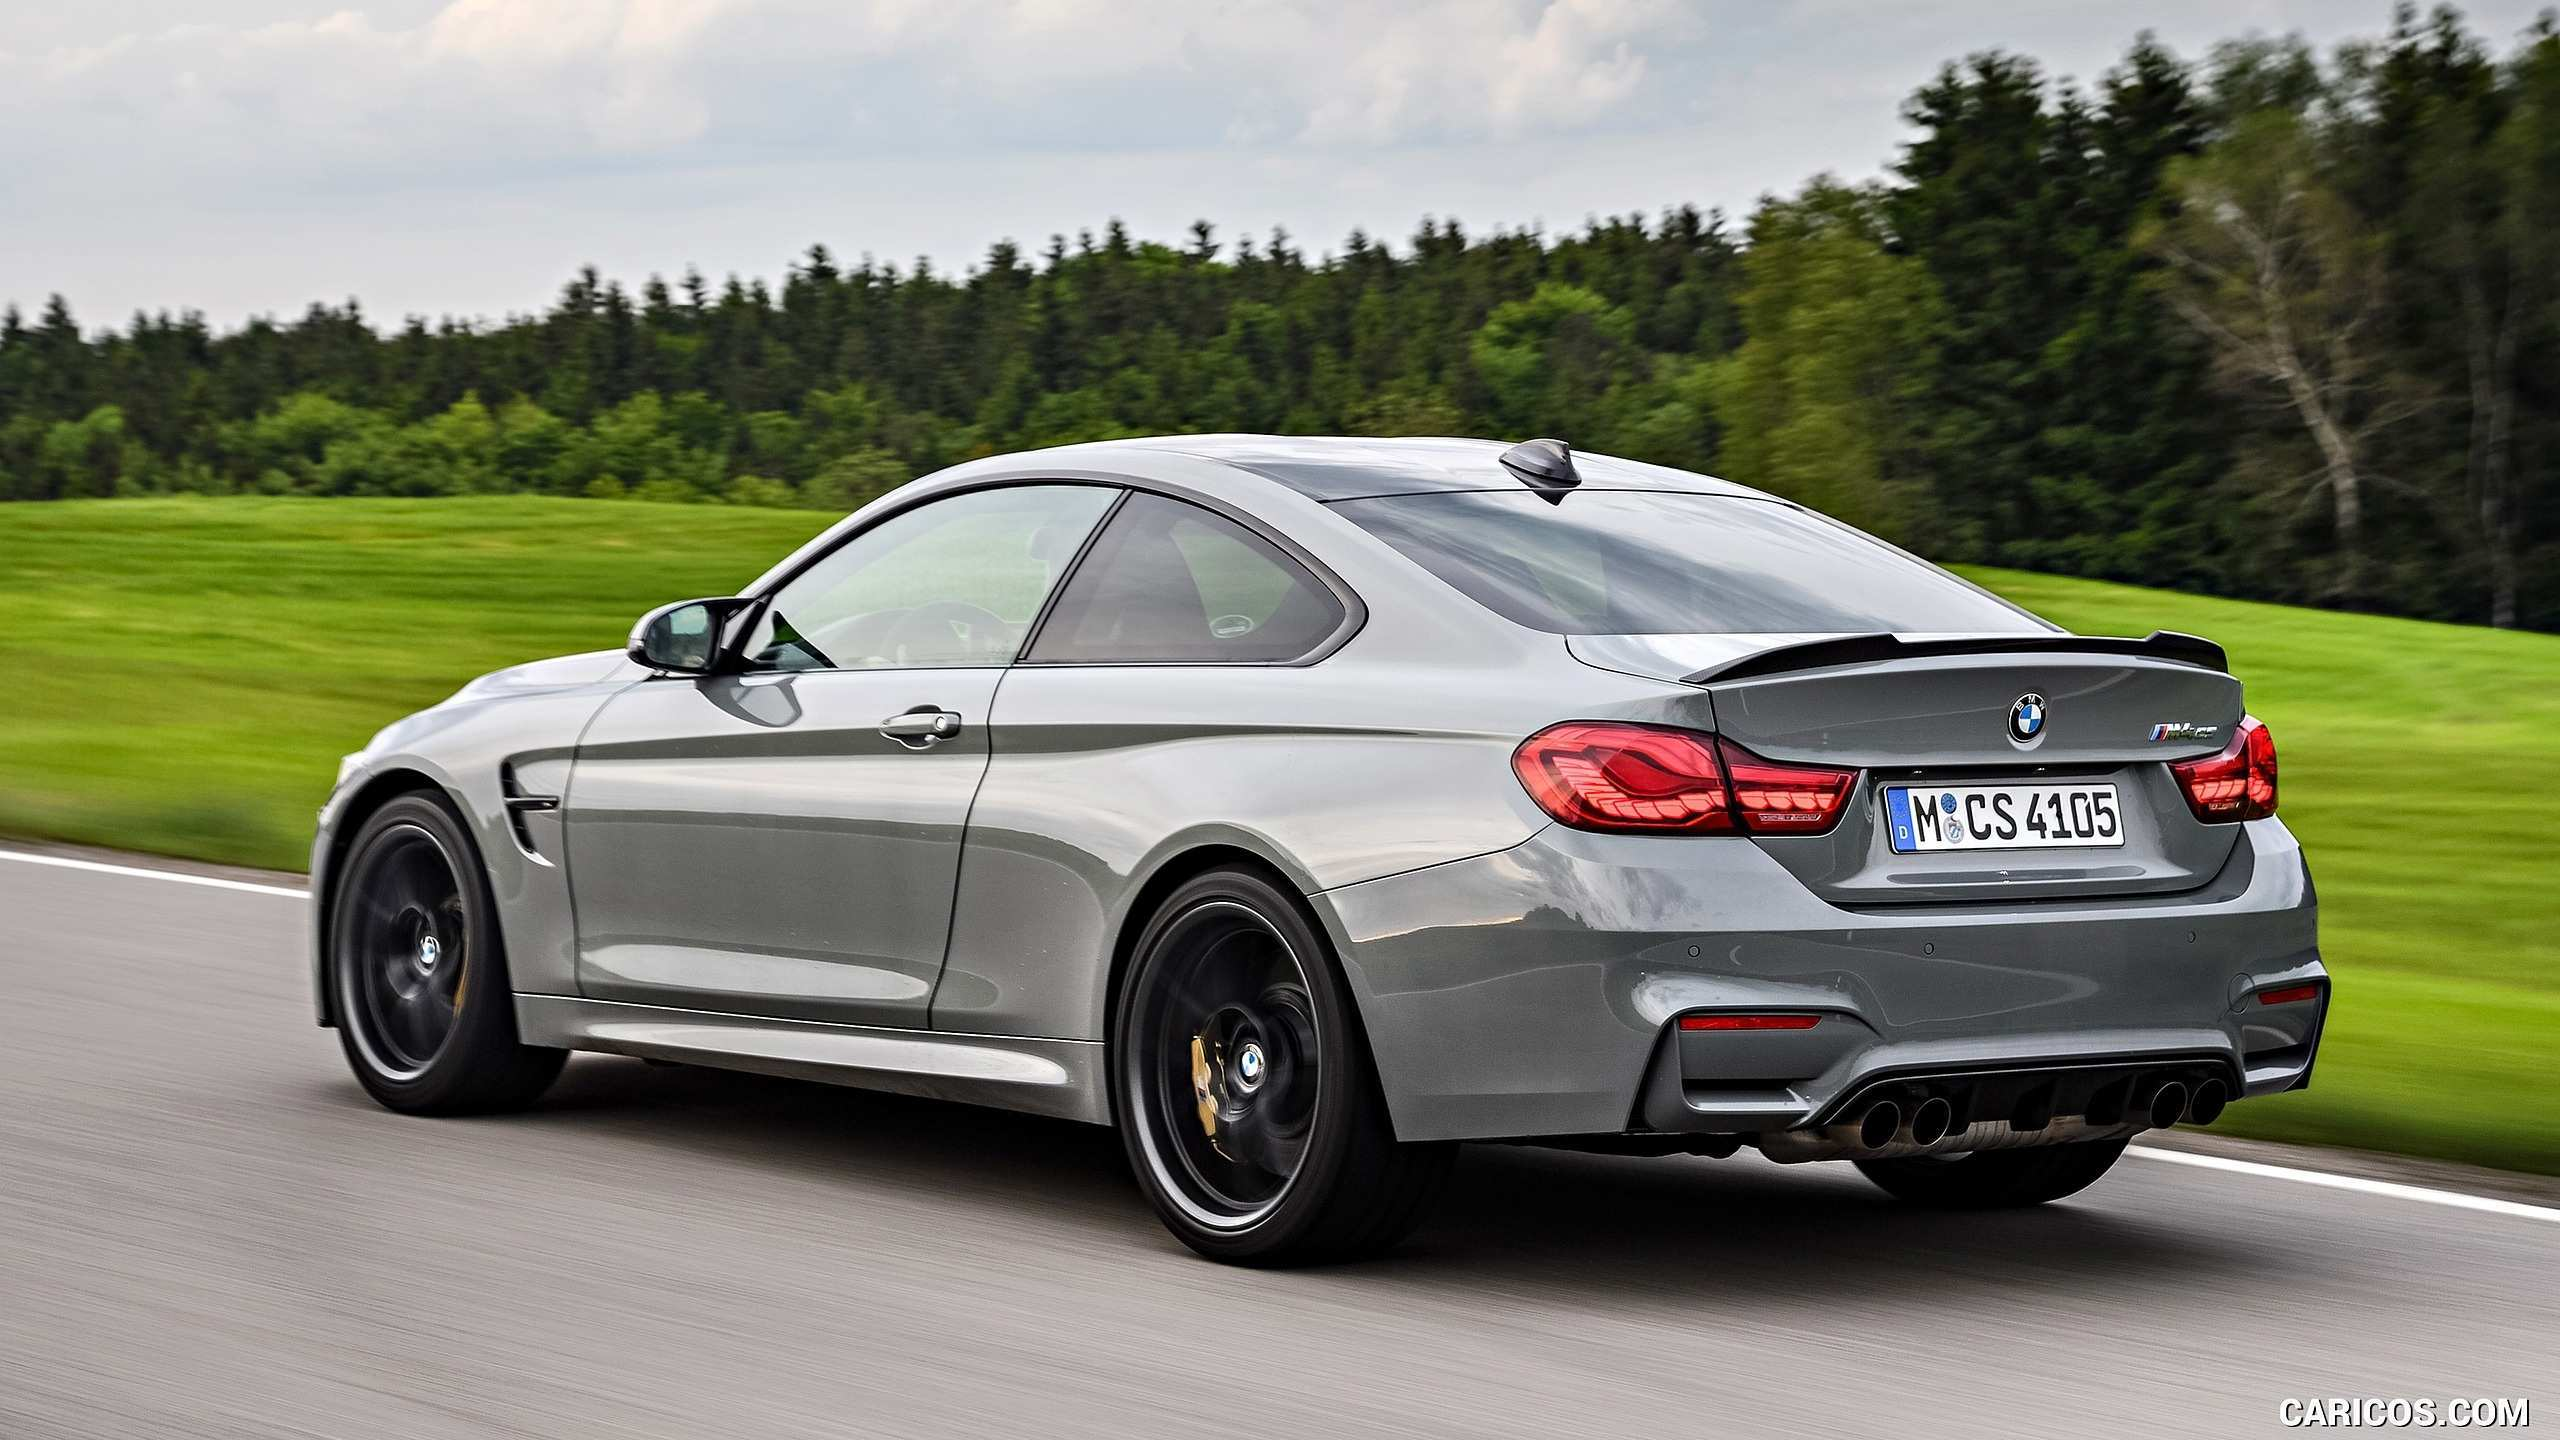 57 The Best 2020 BMW M4 Colors New Review